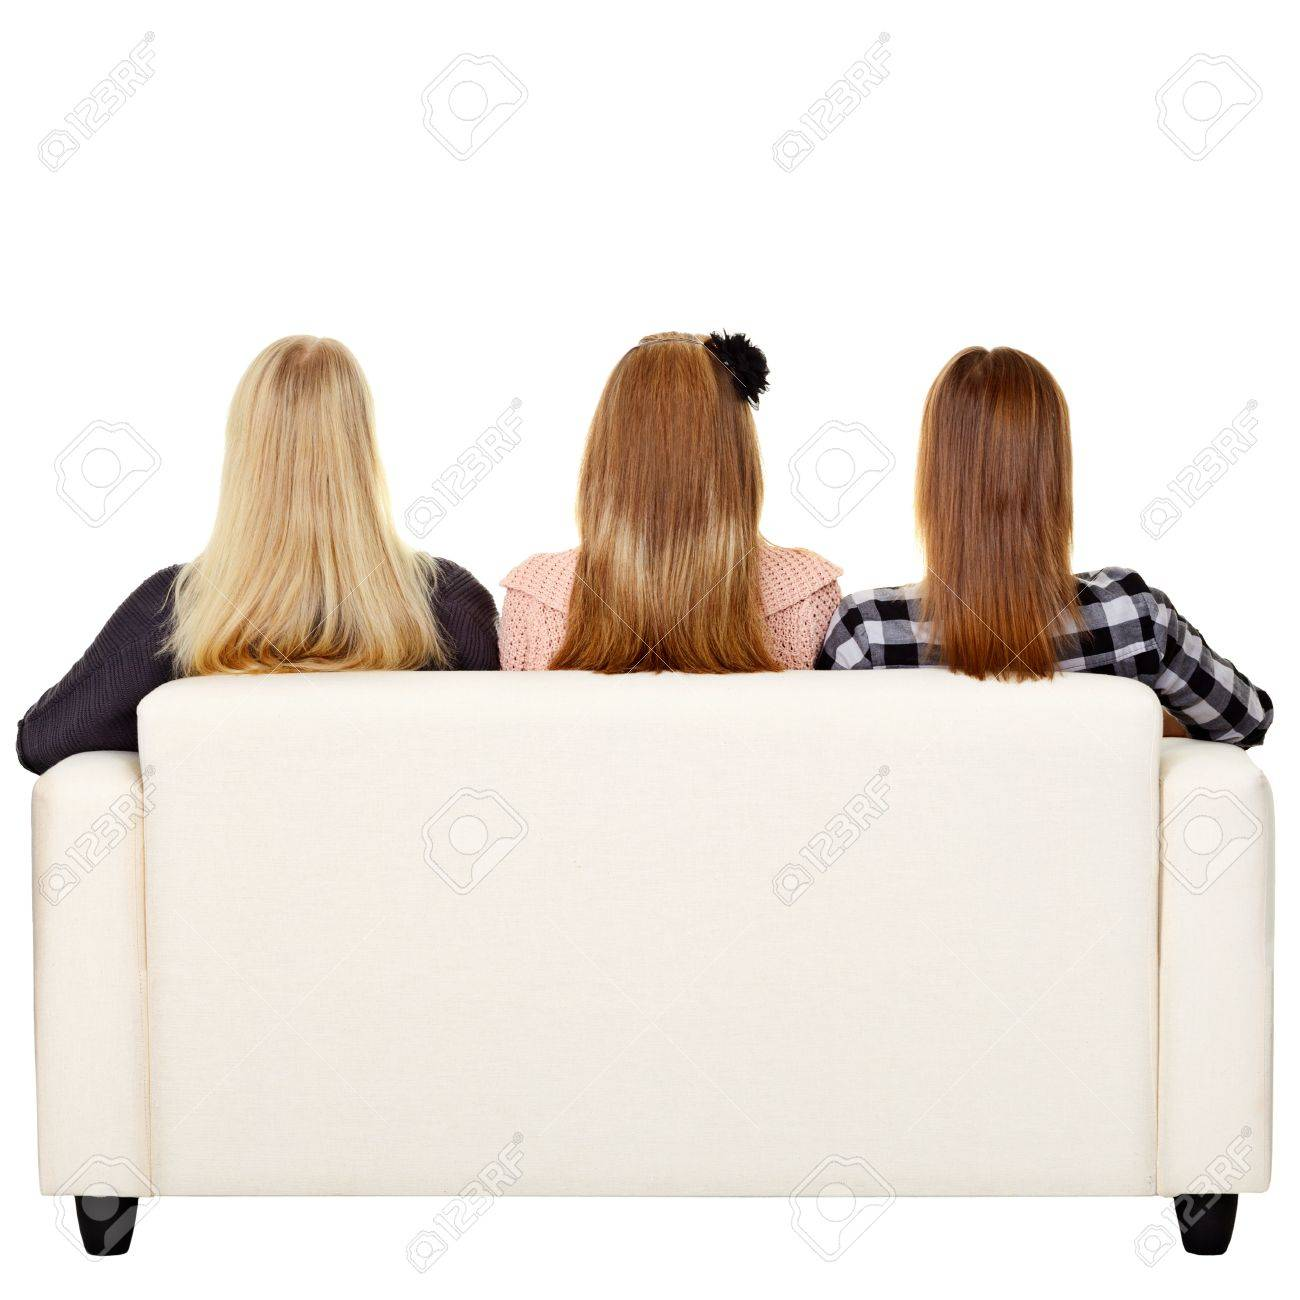 Young women sitting on sofa - rear view. Isolated on white Stock Photo - 14234218